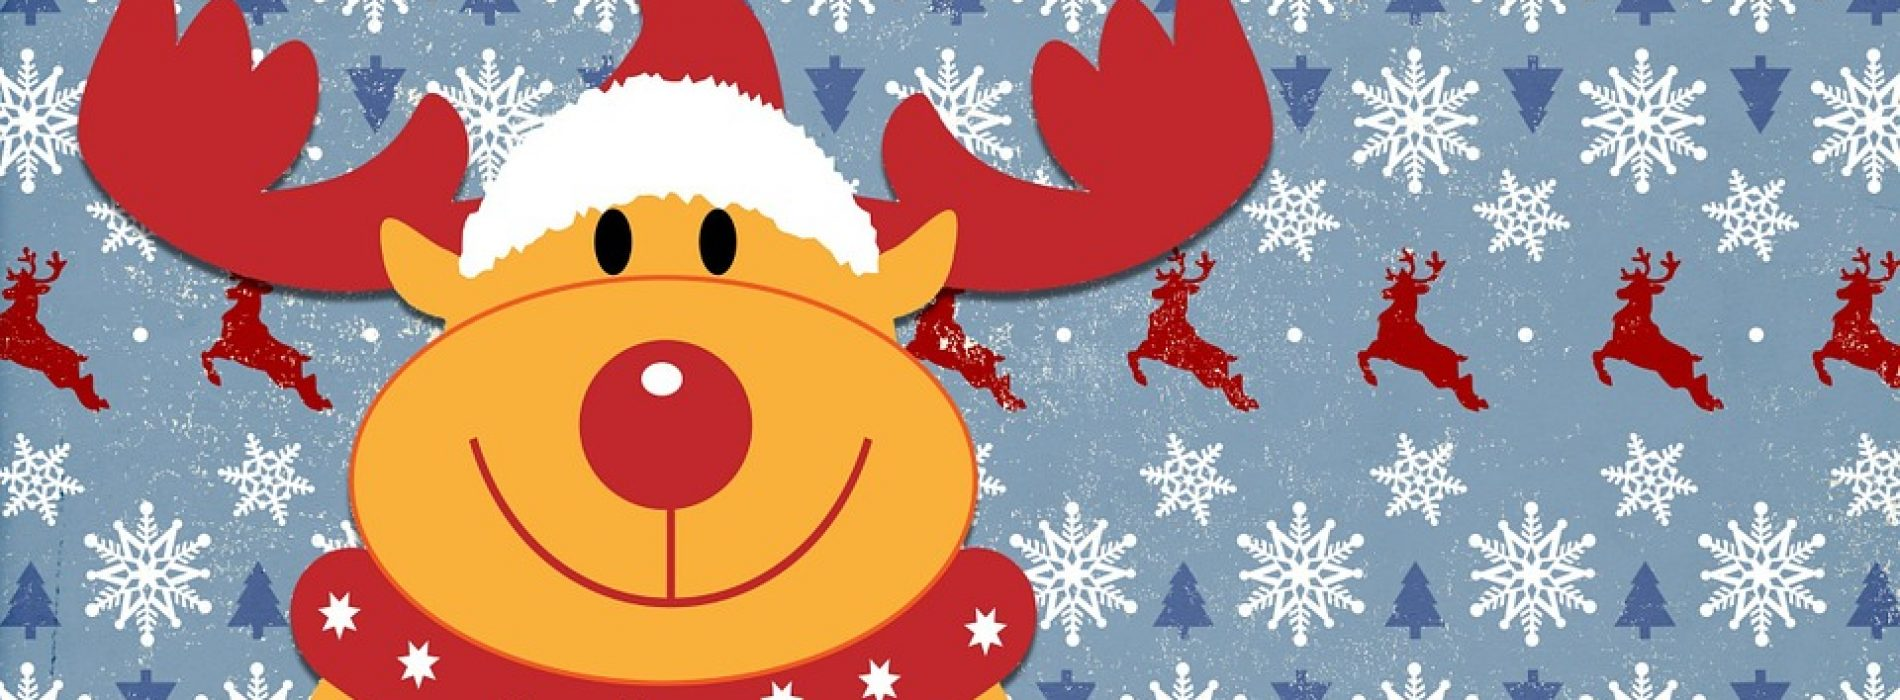 Where Did the Story of Rudolph the Red-Nosed Reindeer Come From?